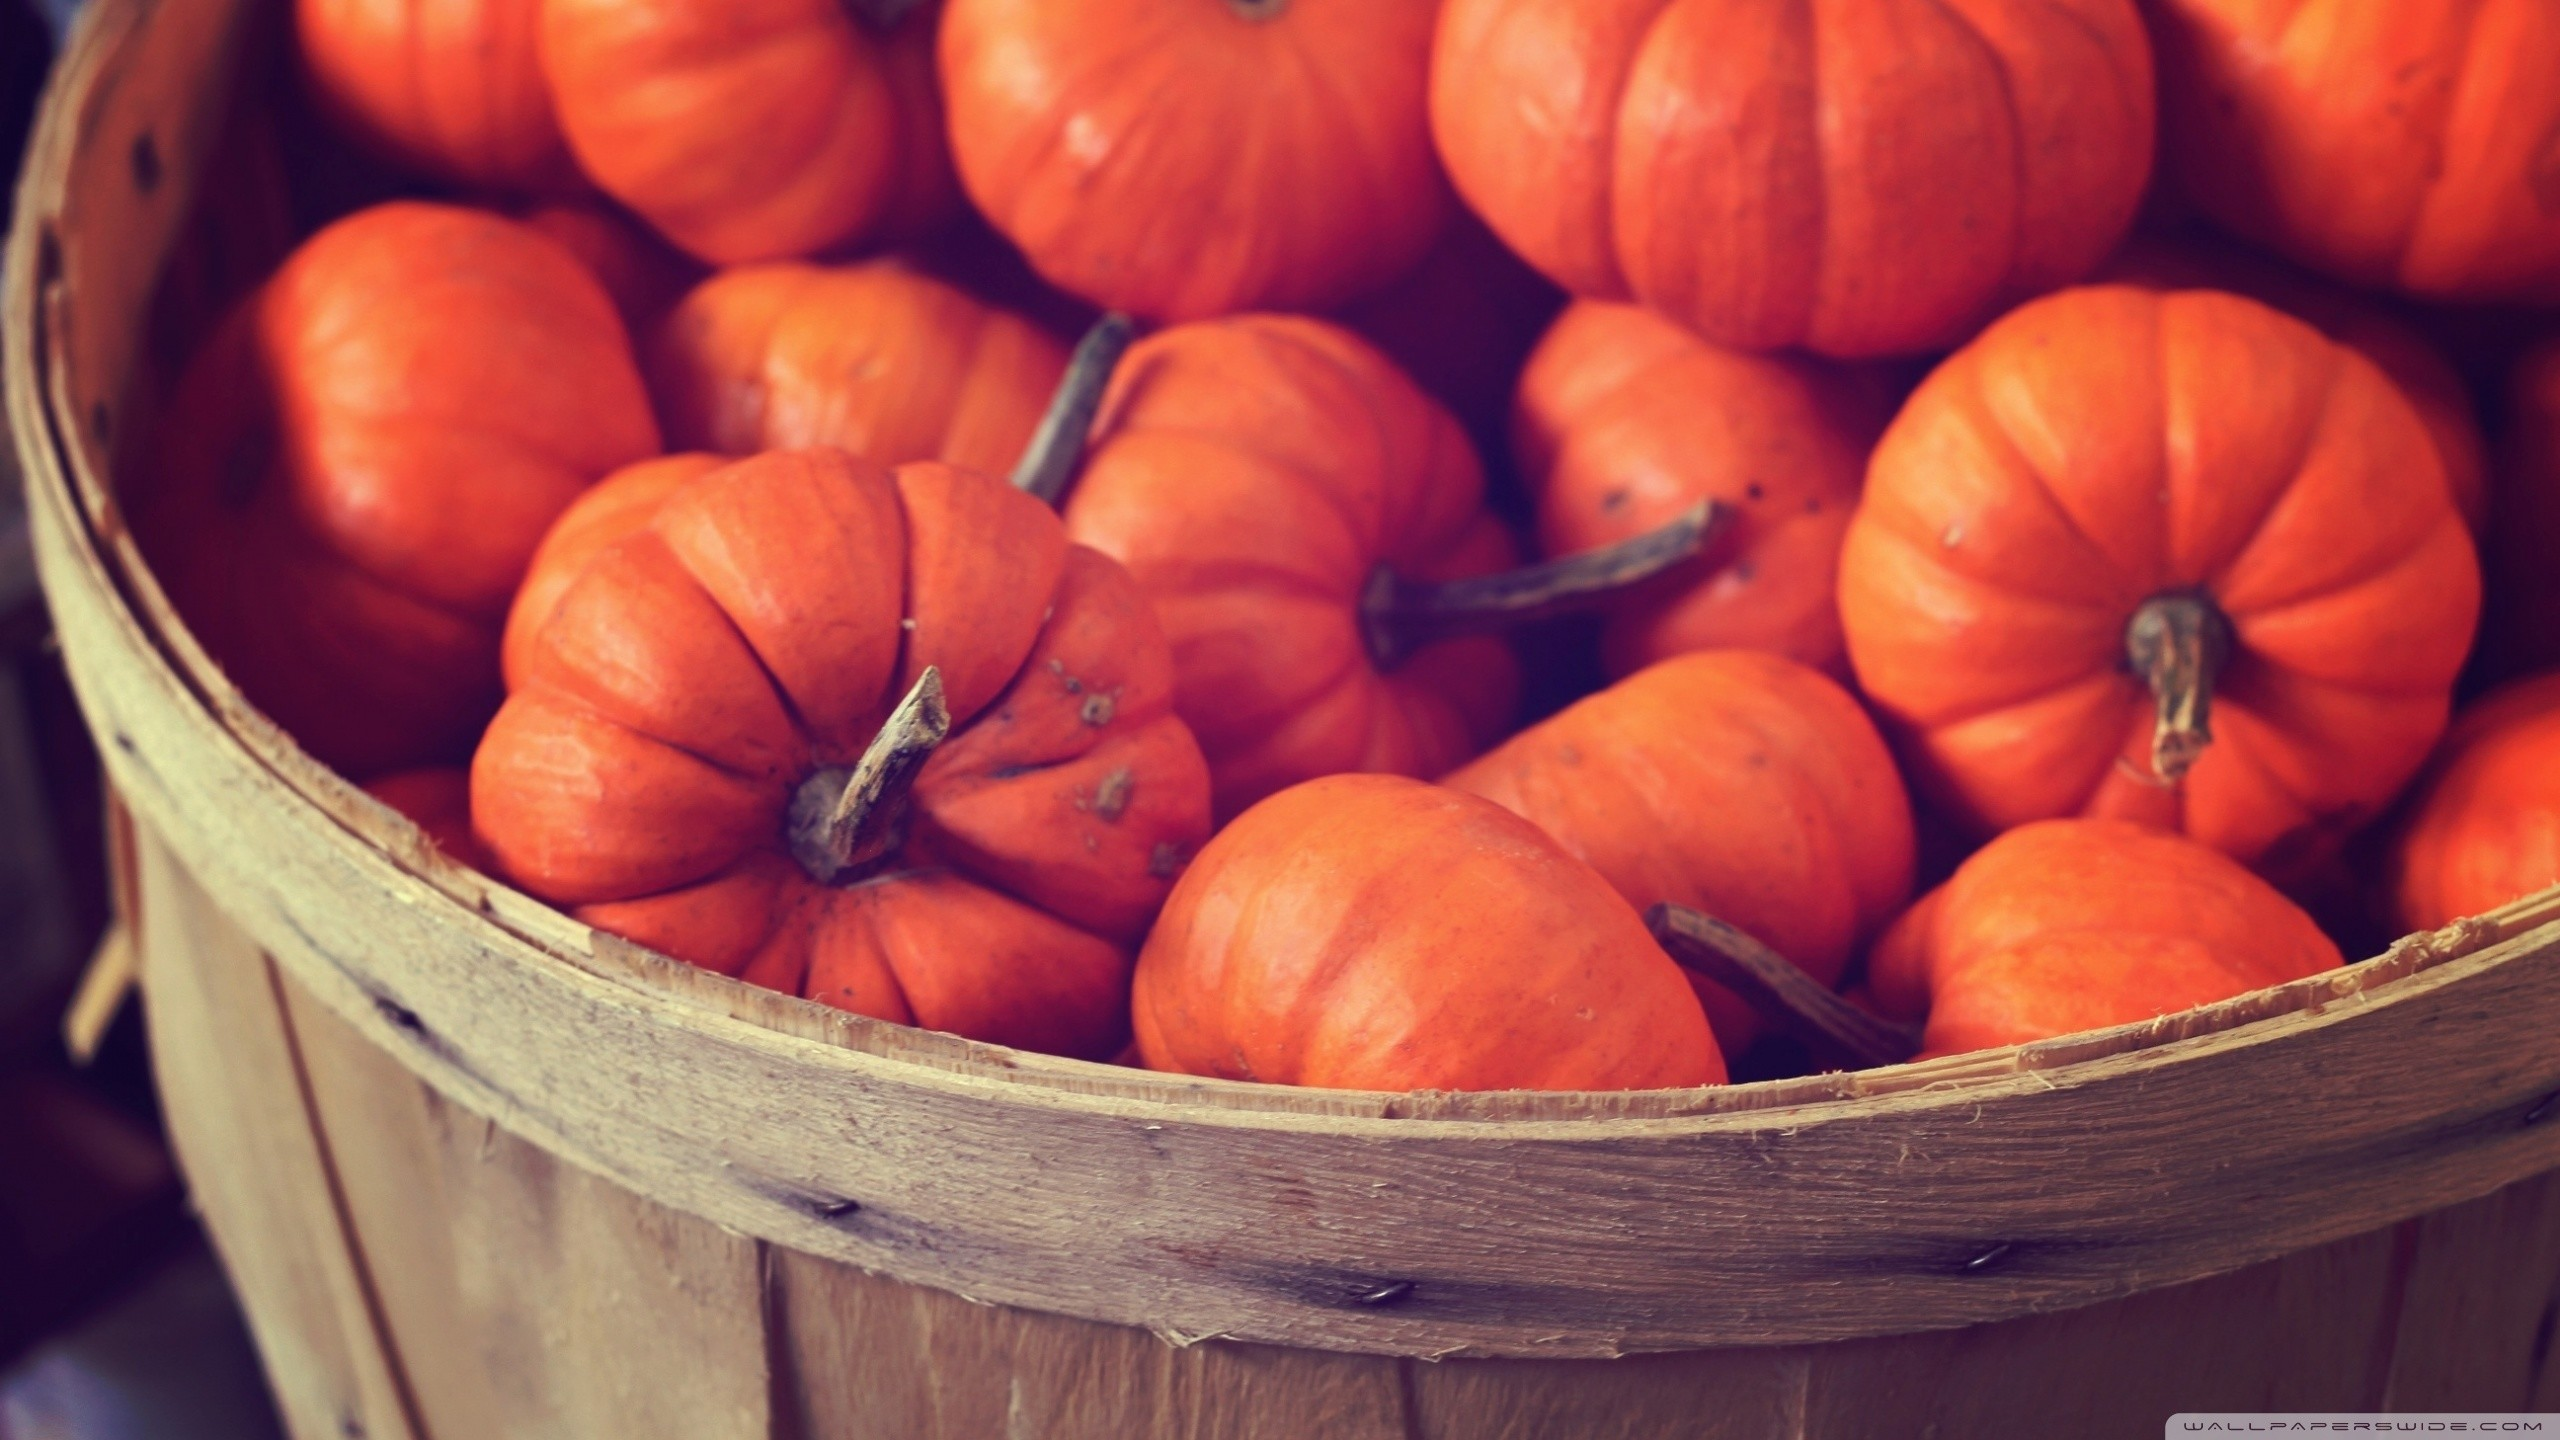 … basket full of pumpkins hd desktop wallpaper high definition …